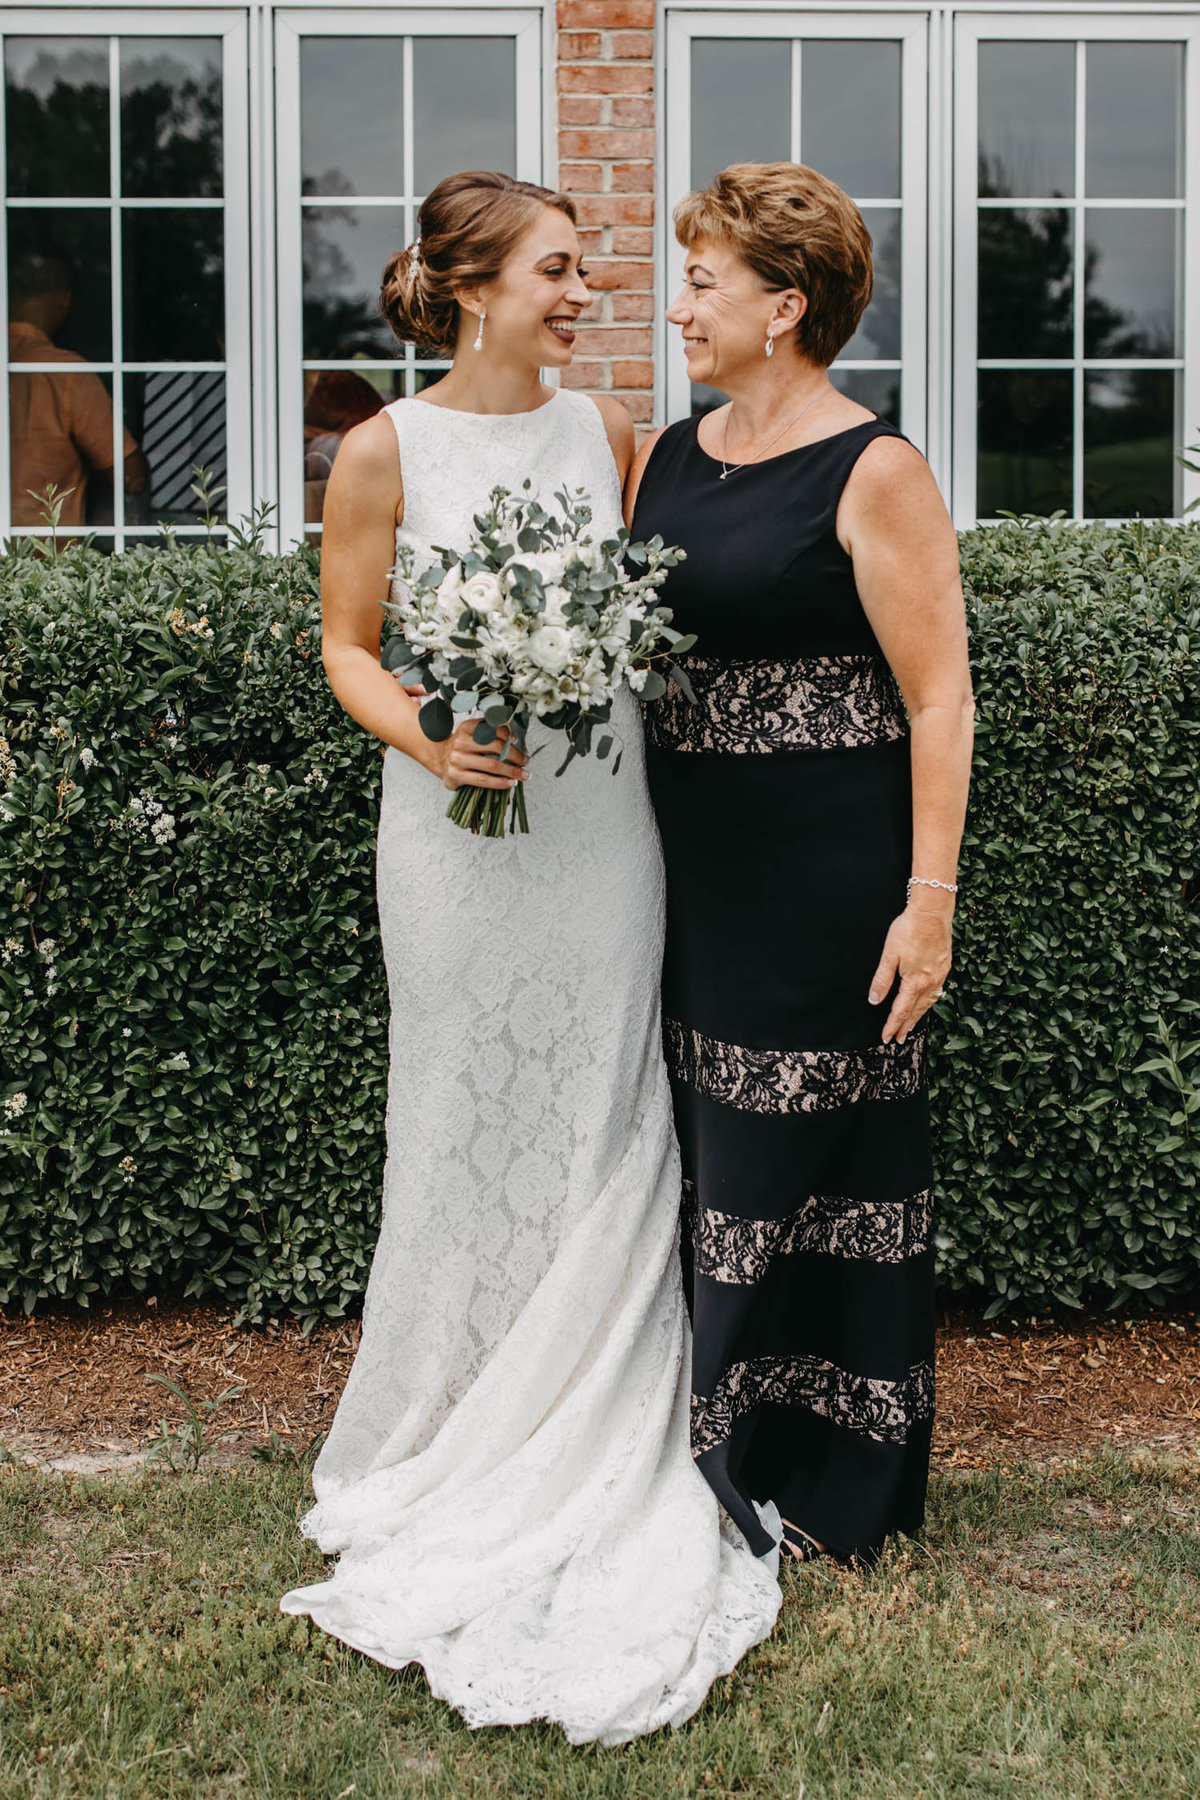 mother-and-daughter-wedding-day-photo-candid-5